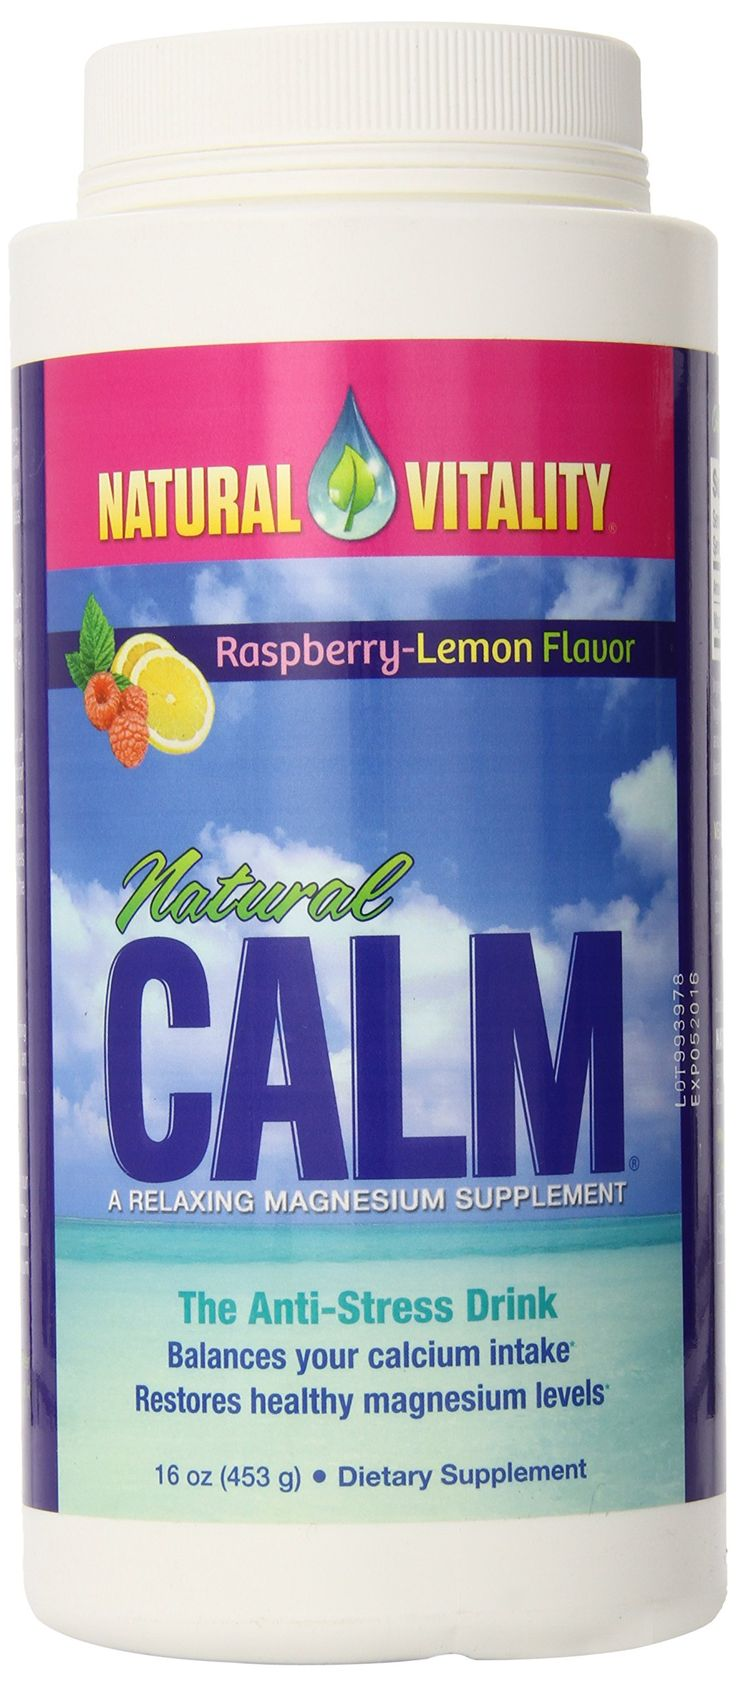 Anti-Stress Drink with Vitamins and other nutritional supplements. Magnesium and calcium mineral supplement. http://www.farmersmarketonline.com/vitamins.htm